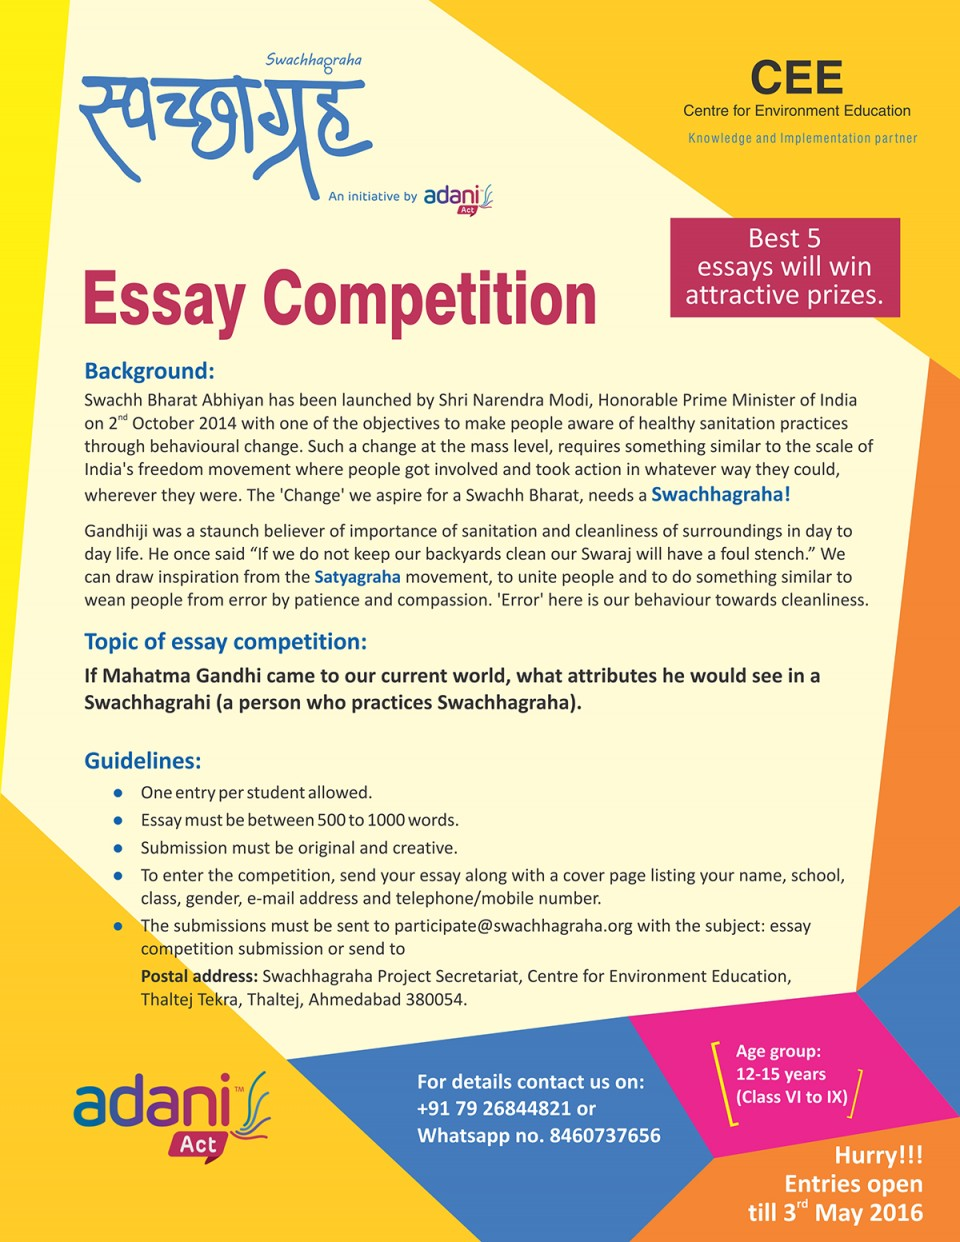 011 20180129171946essay20competition Essay About Cleanliness In School Phenomenal Writing On Premises 960